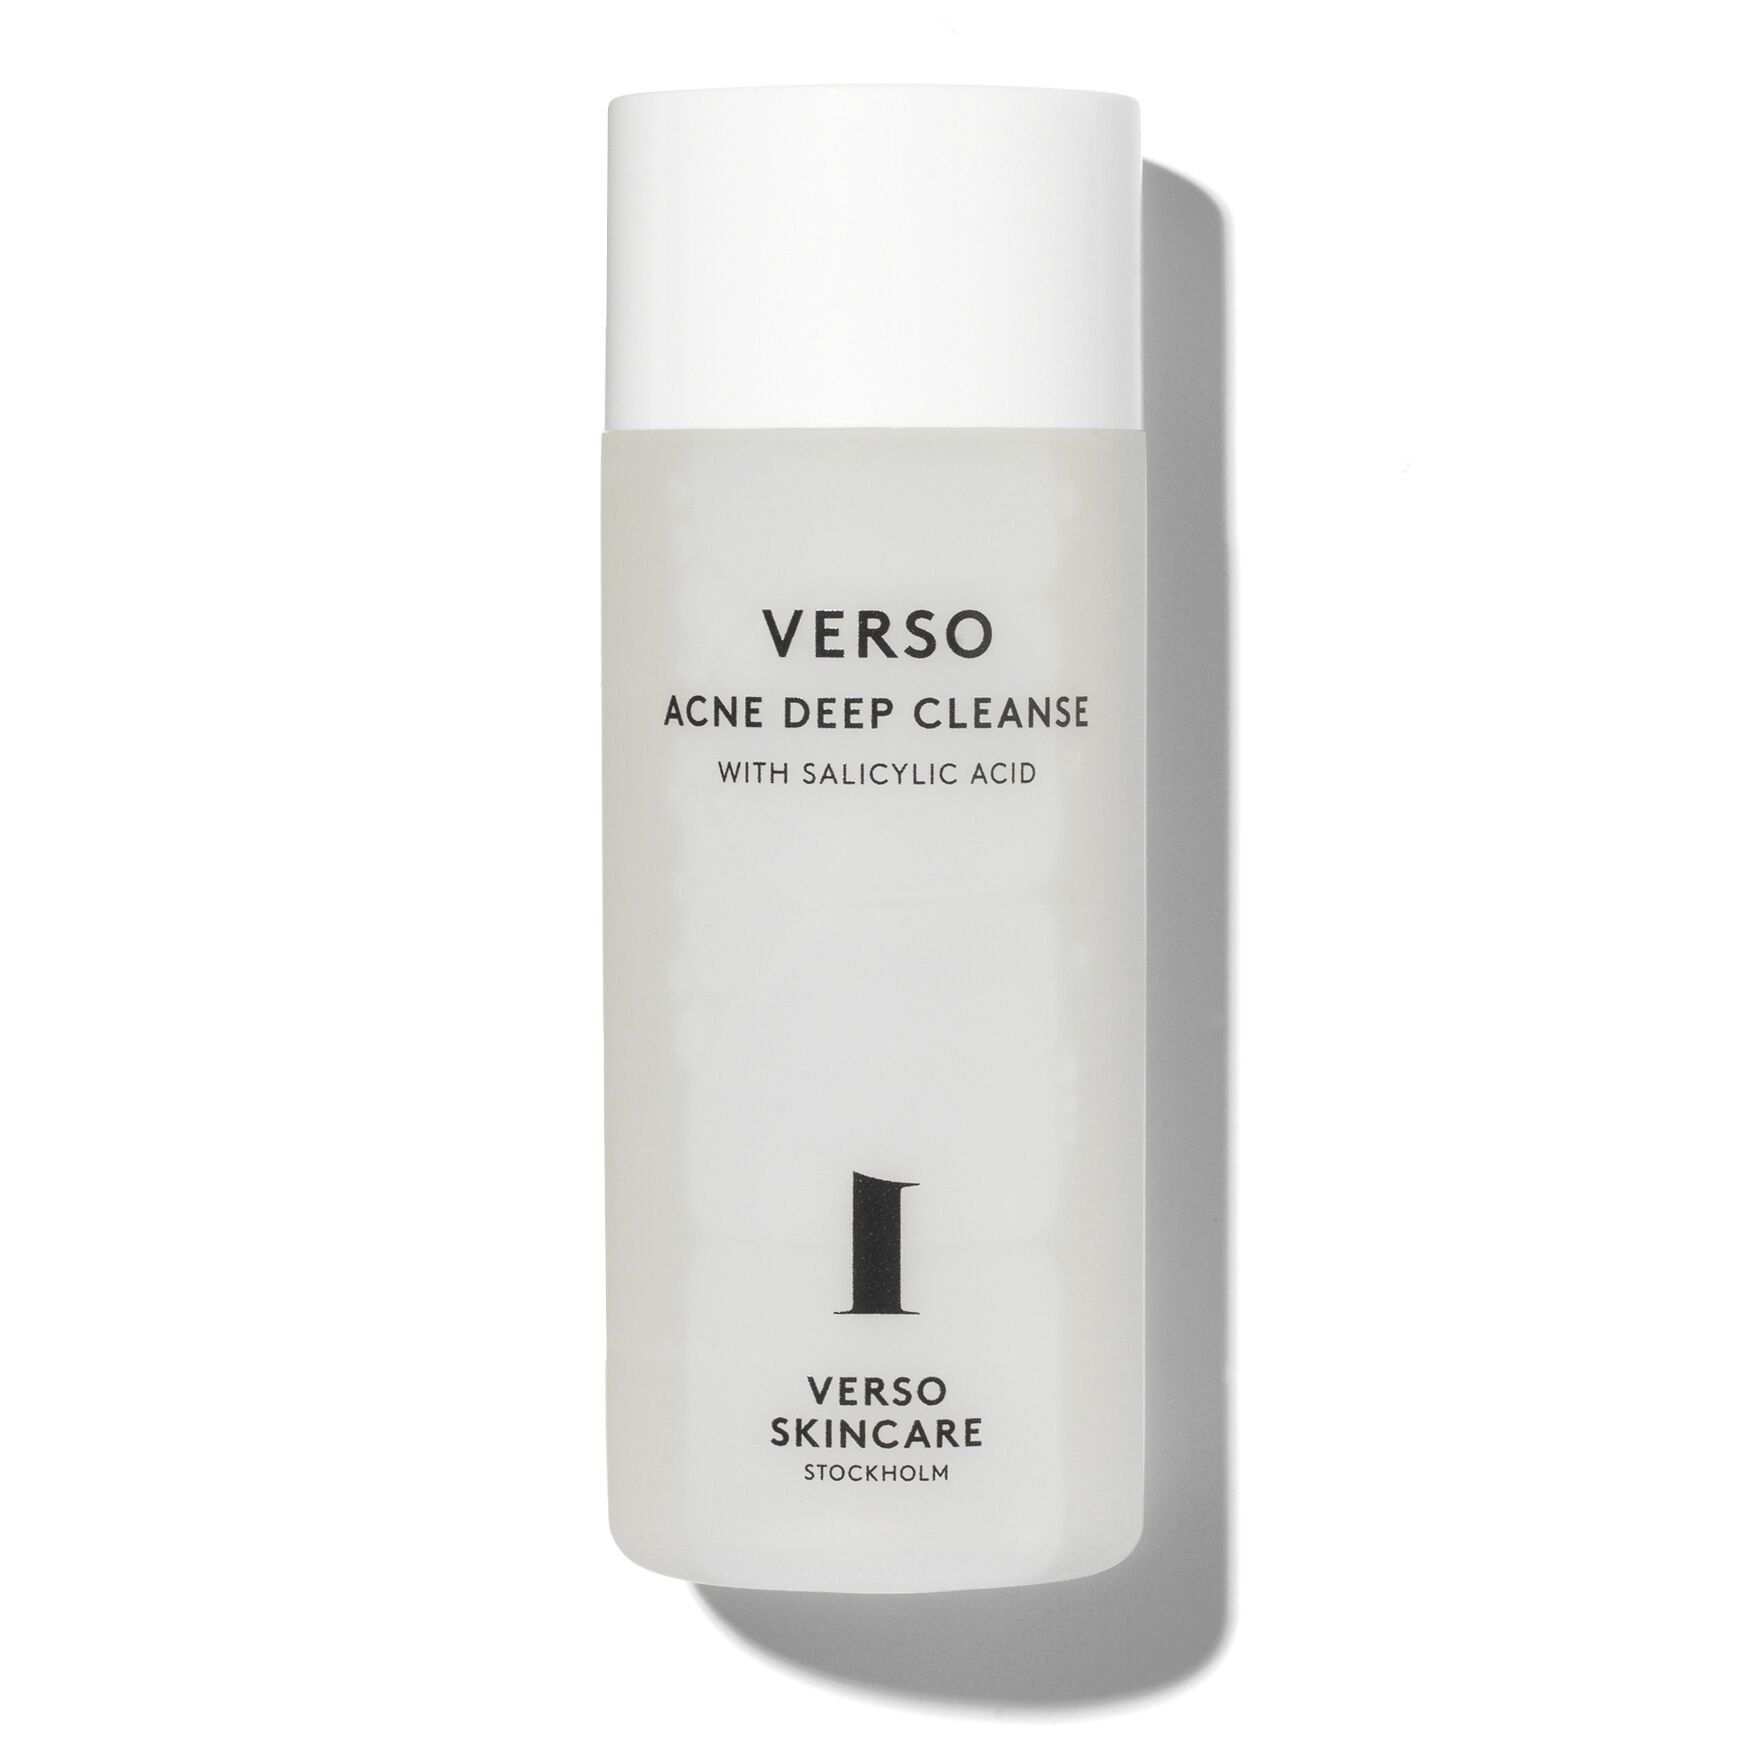 My Celebrity Life – Verso Acne Deep Cleanse